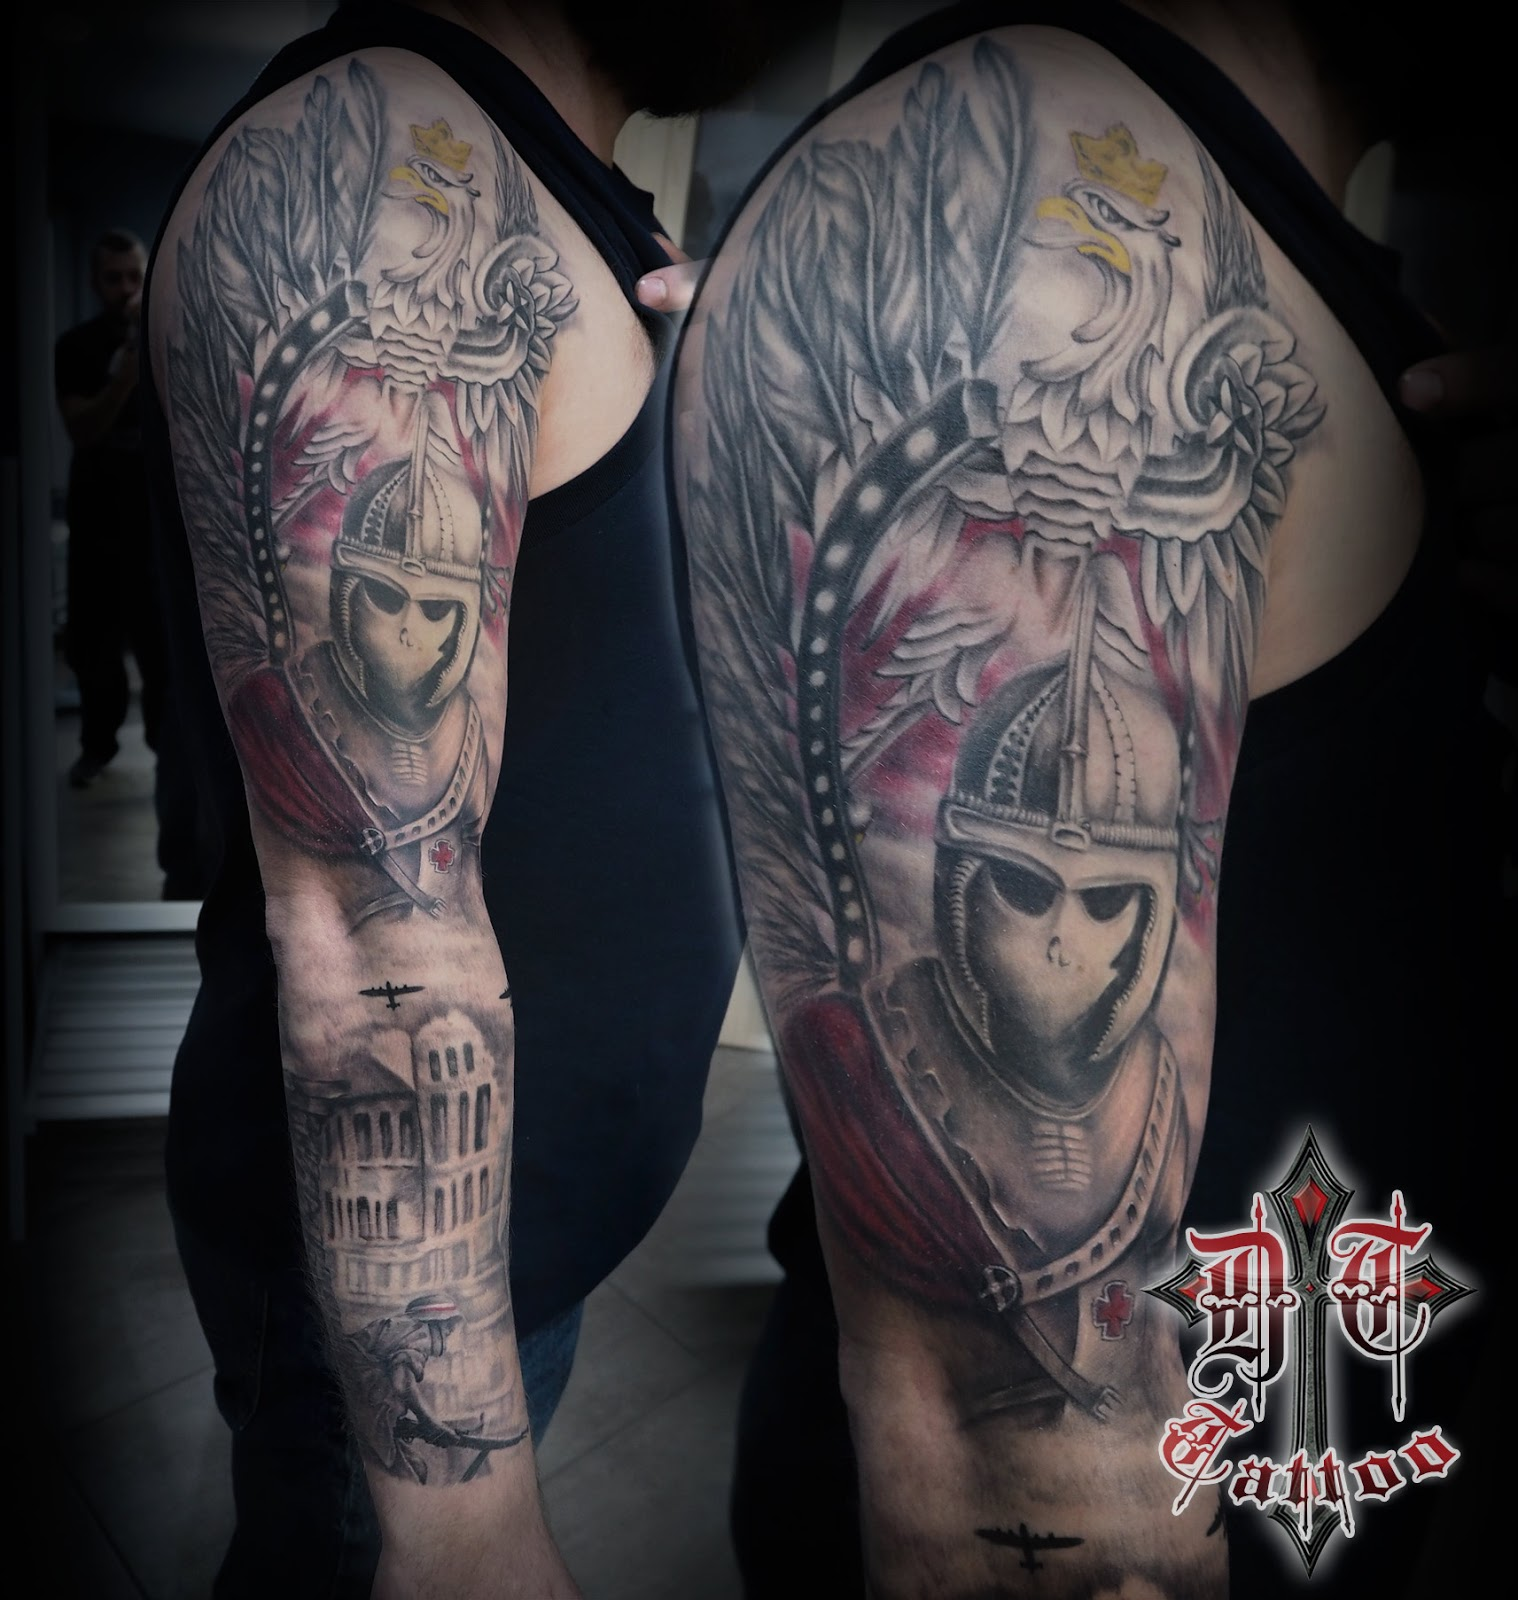 Polish Patriot Tattoo Dark Templar Tattoo Studio Tatuażu Oświęcim